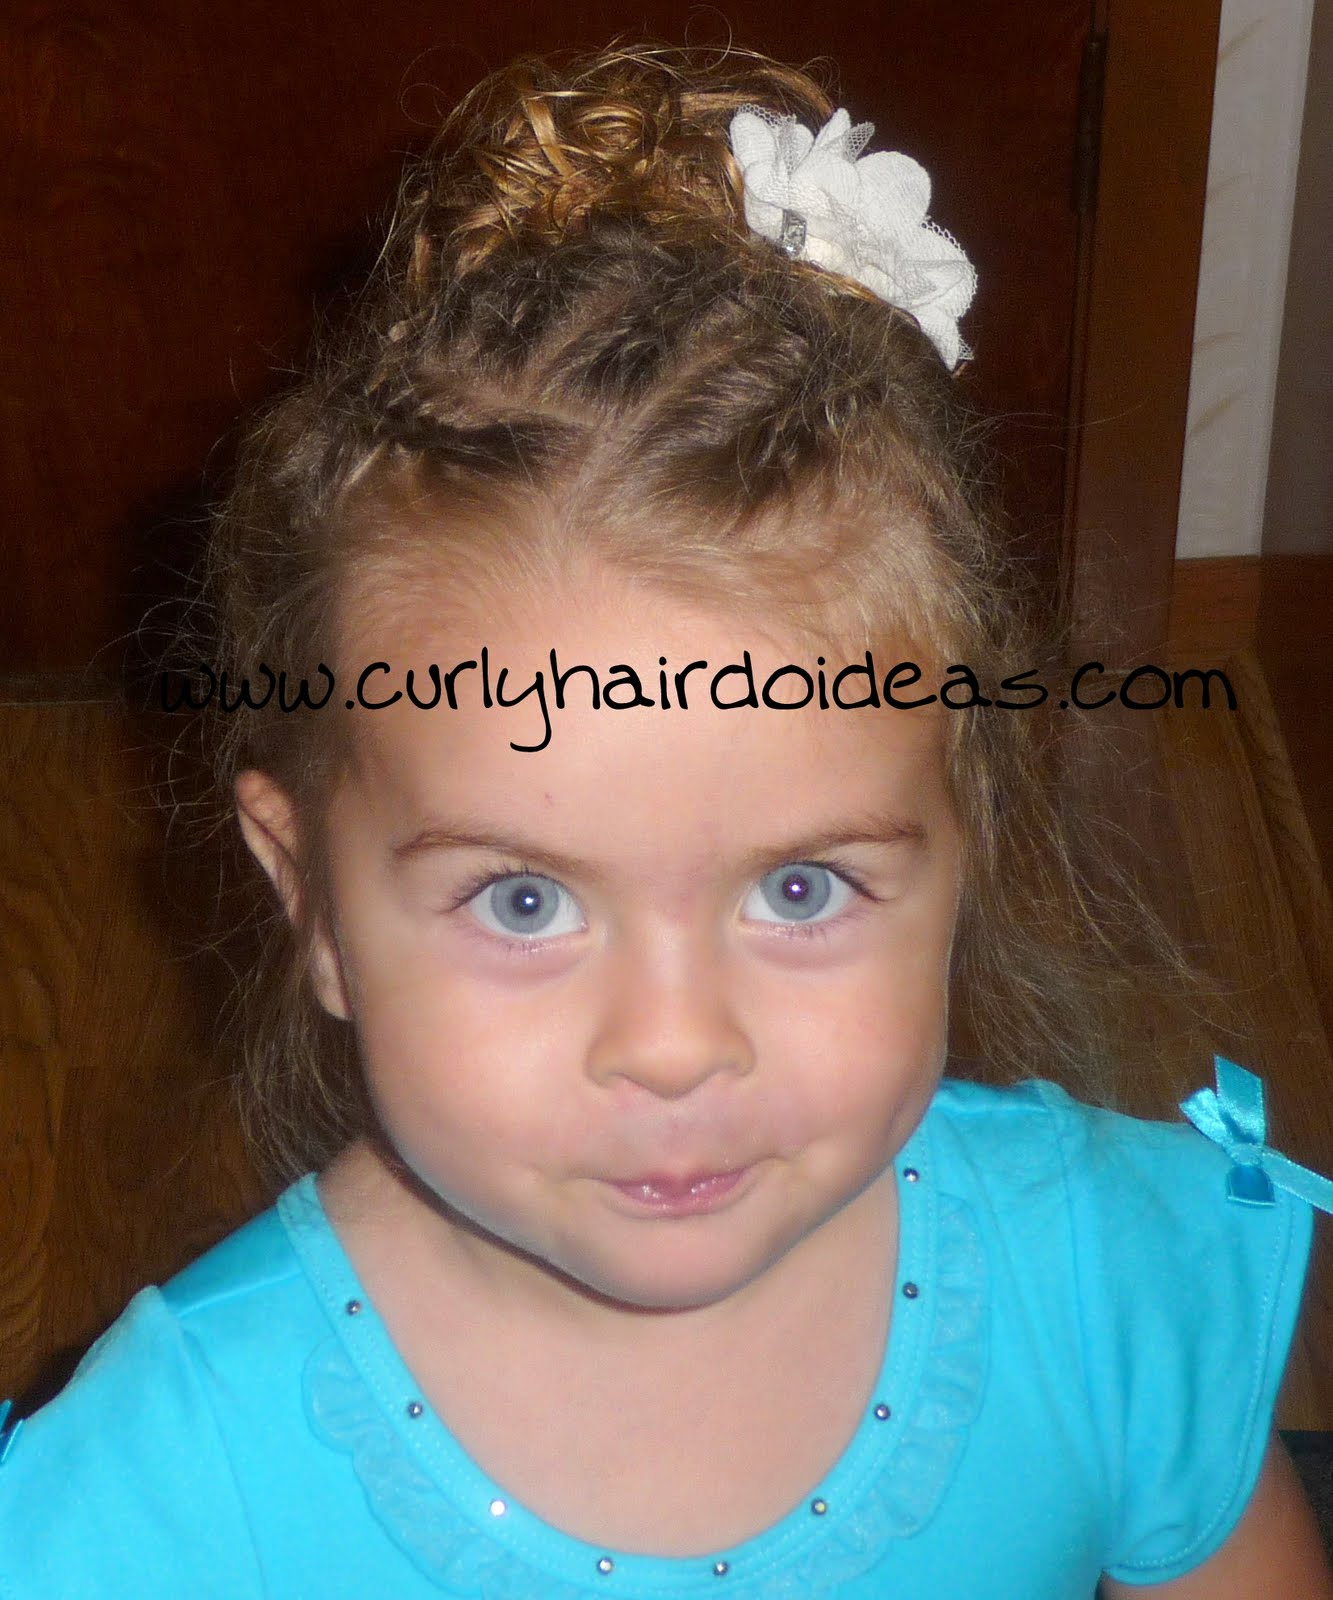 Stupendous Curly Hairdo Ideas Toddler Hairstyle For Dance Class Short Hairstyles For Black Women Fulllsitofus